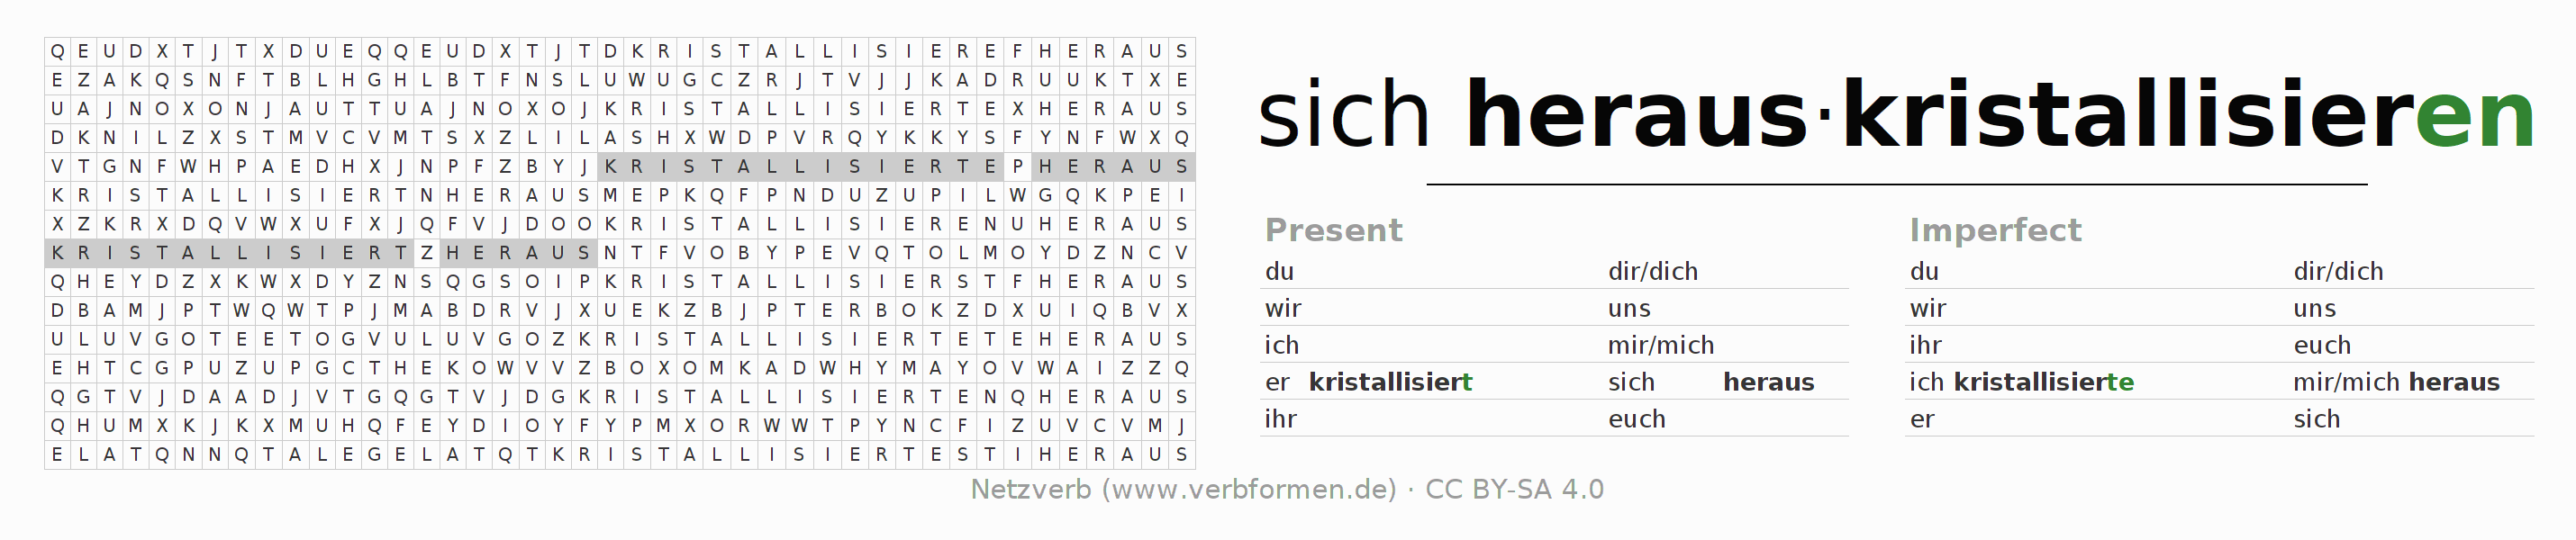 Word search puzzle for the conjugation of the verb sich herauskristallisieren